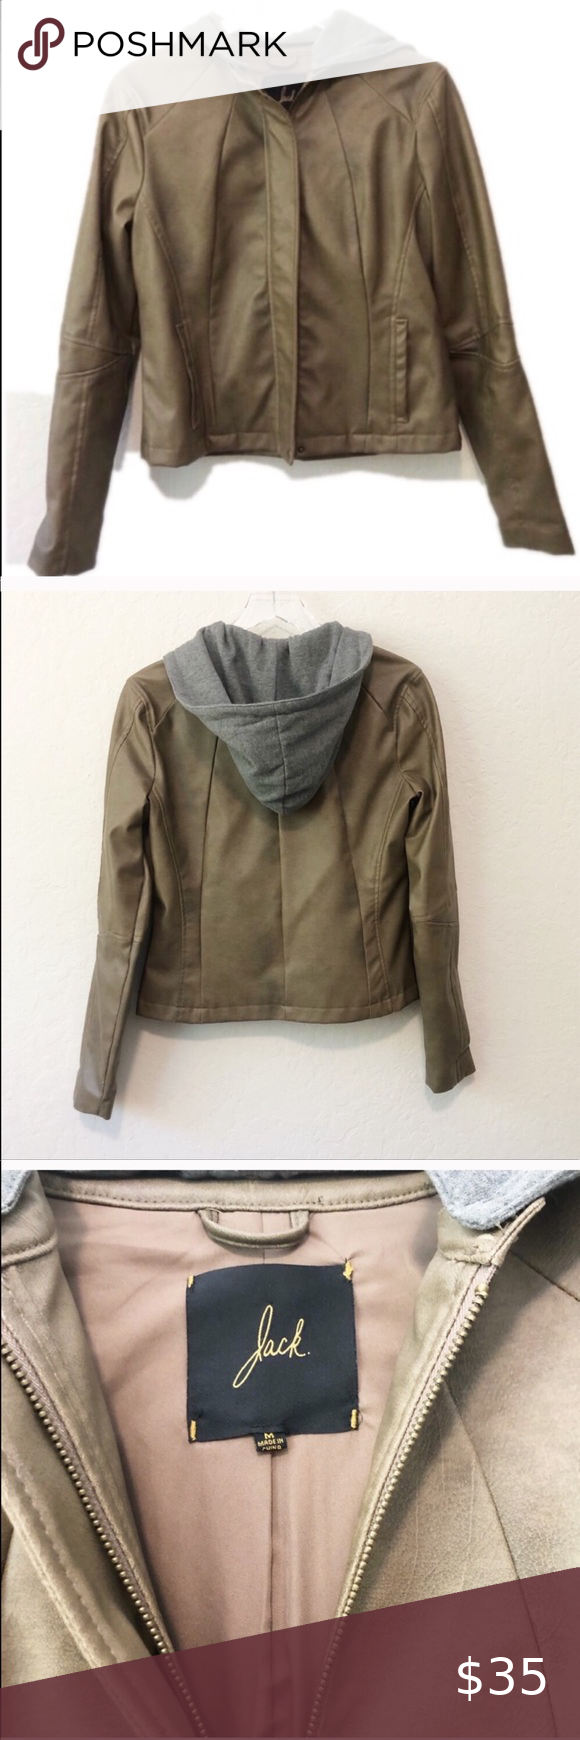 Jack By Bb Dakota Faux Leather Hooded Jacket Olive Green Brown Vegan Leather Jacket With Rem Faux Leather Hooded Jacket Leather Jacket With Hood Leather Hoodie [ 1740 x 580 Pixel ]